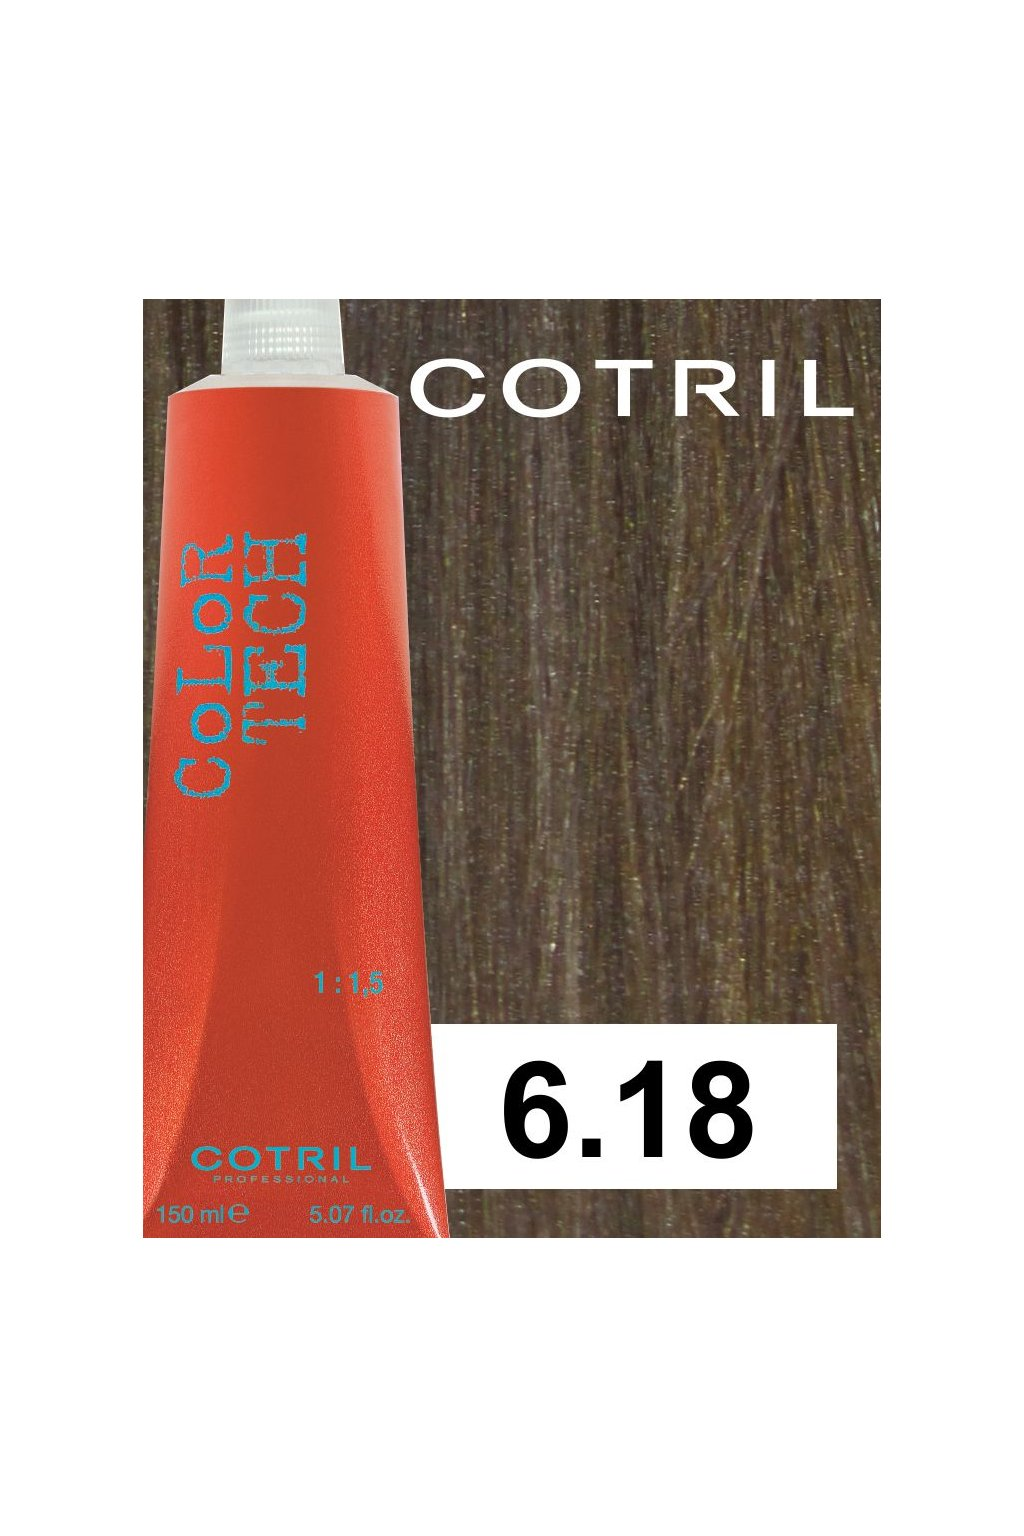 6 18 ct cotril